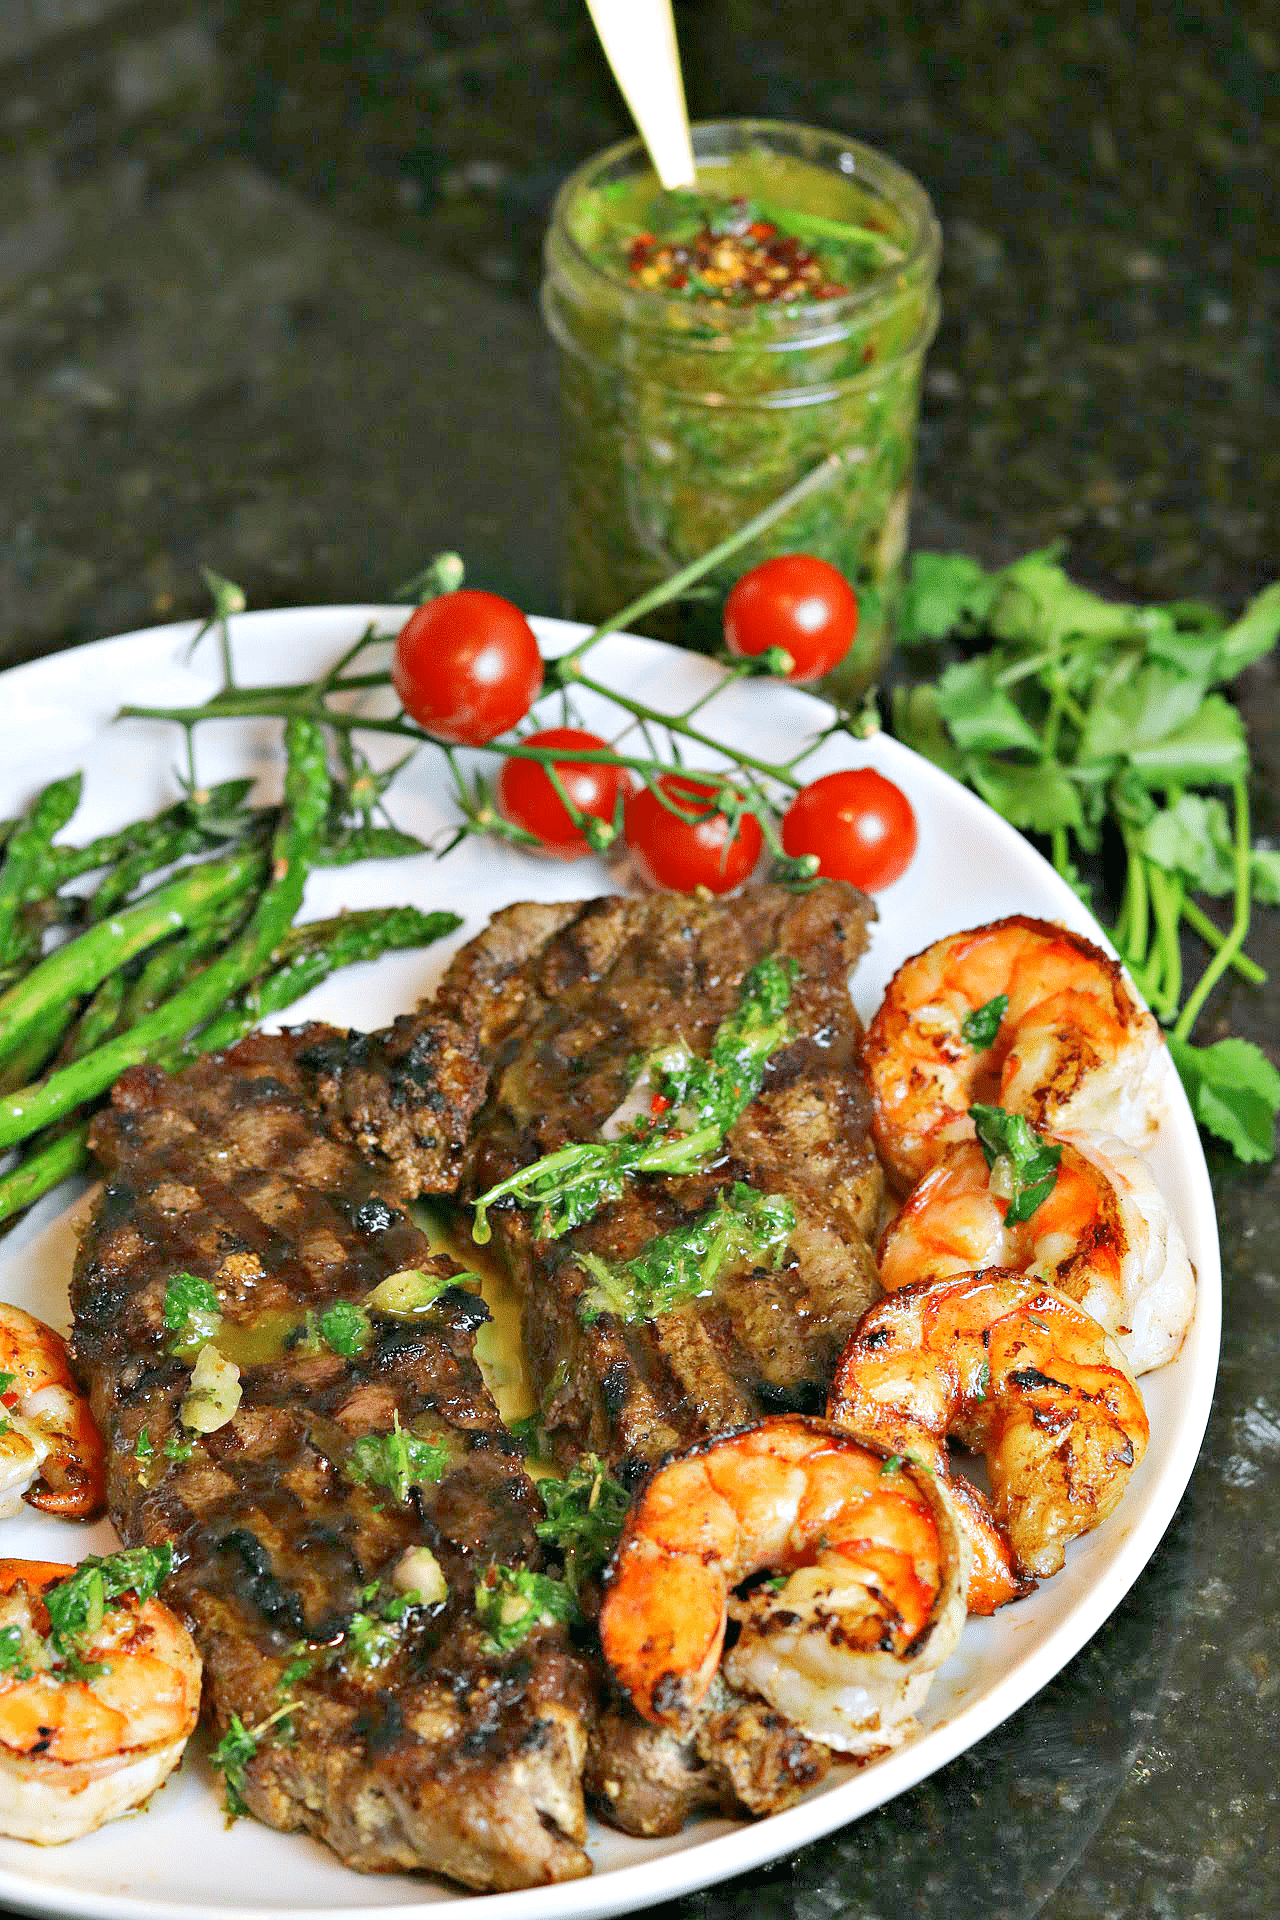 NY Strip Steak on a plate with asparagus, shrimp, and chimichurri